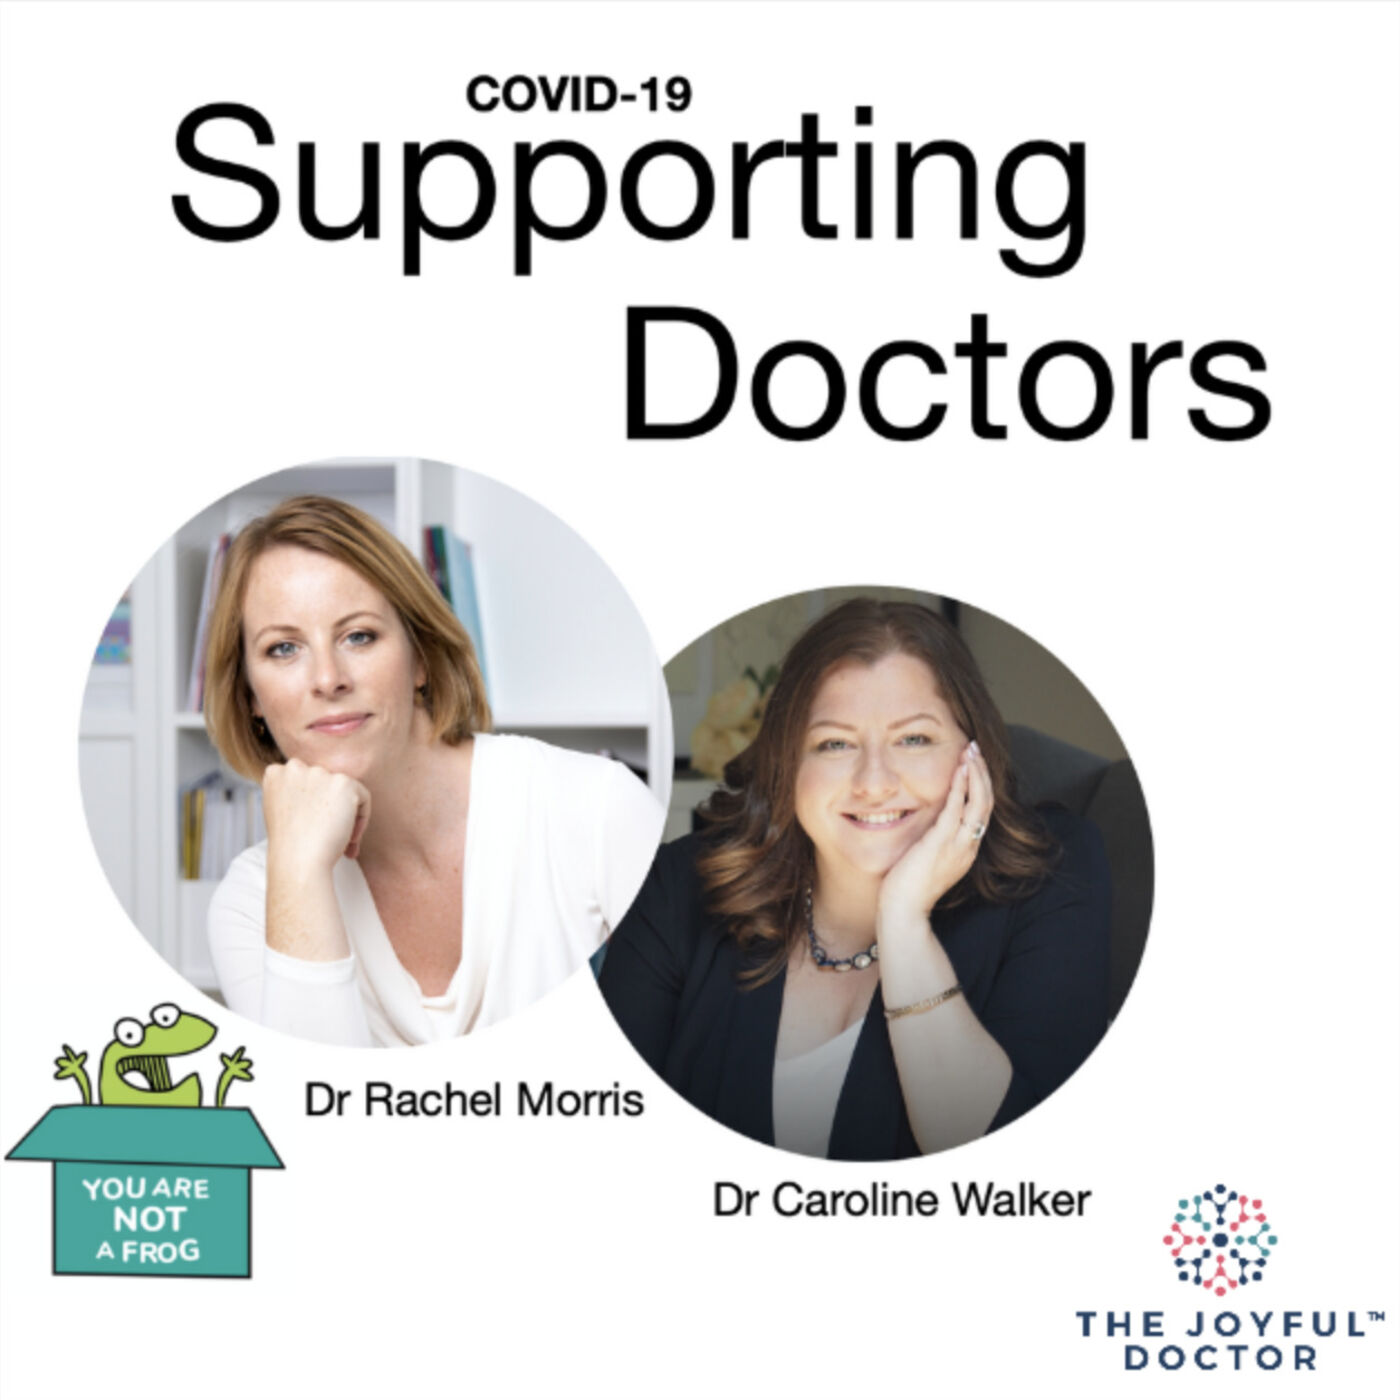 COVID-19 Supporting Doctors: Moral injury hurts with Dr Caroline Walker and Dr Rachel Morris